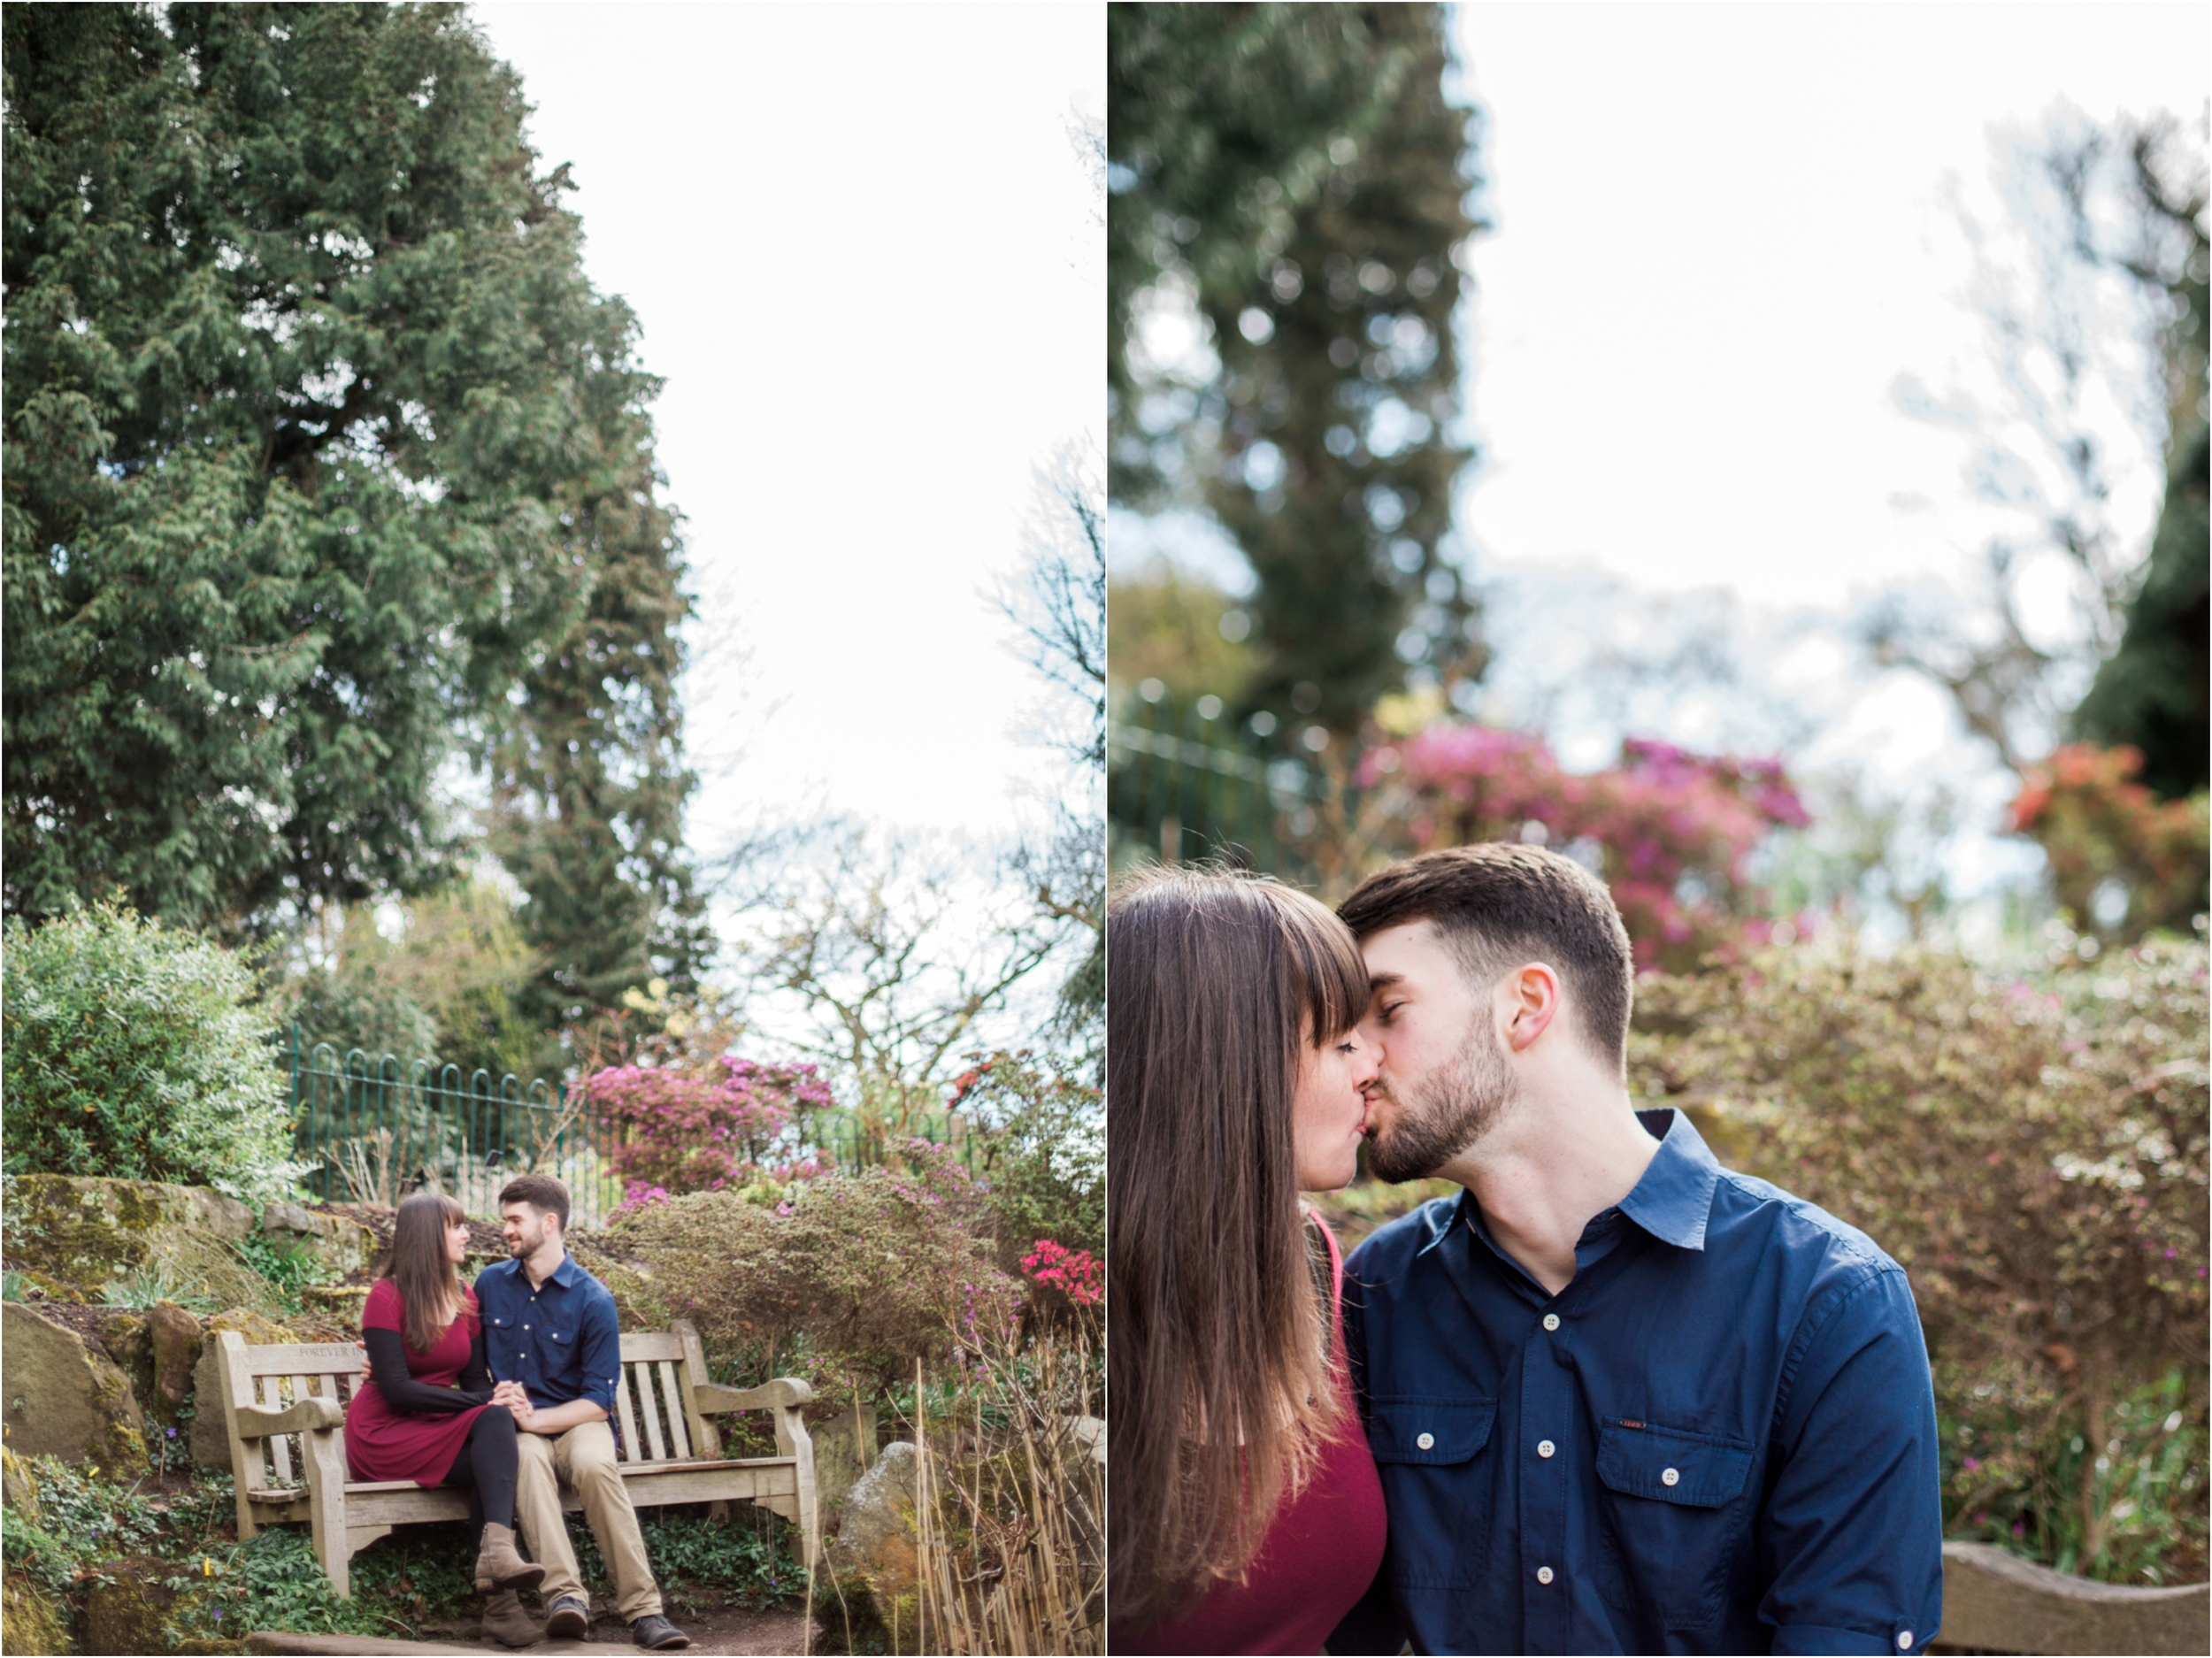 Sophie Evans Photography, Alice & Nathanael Botanical Gardens Engagement Shoot. Warwickshire Wedding Photographer (28).jpg